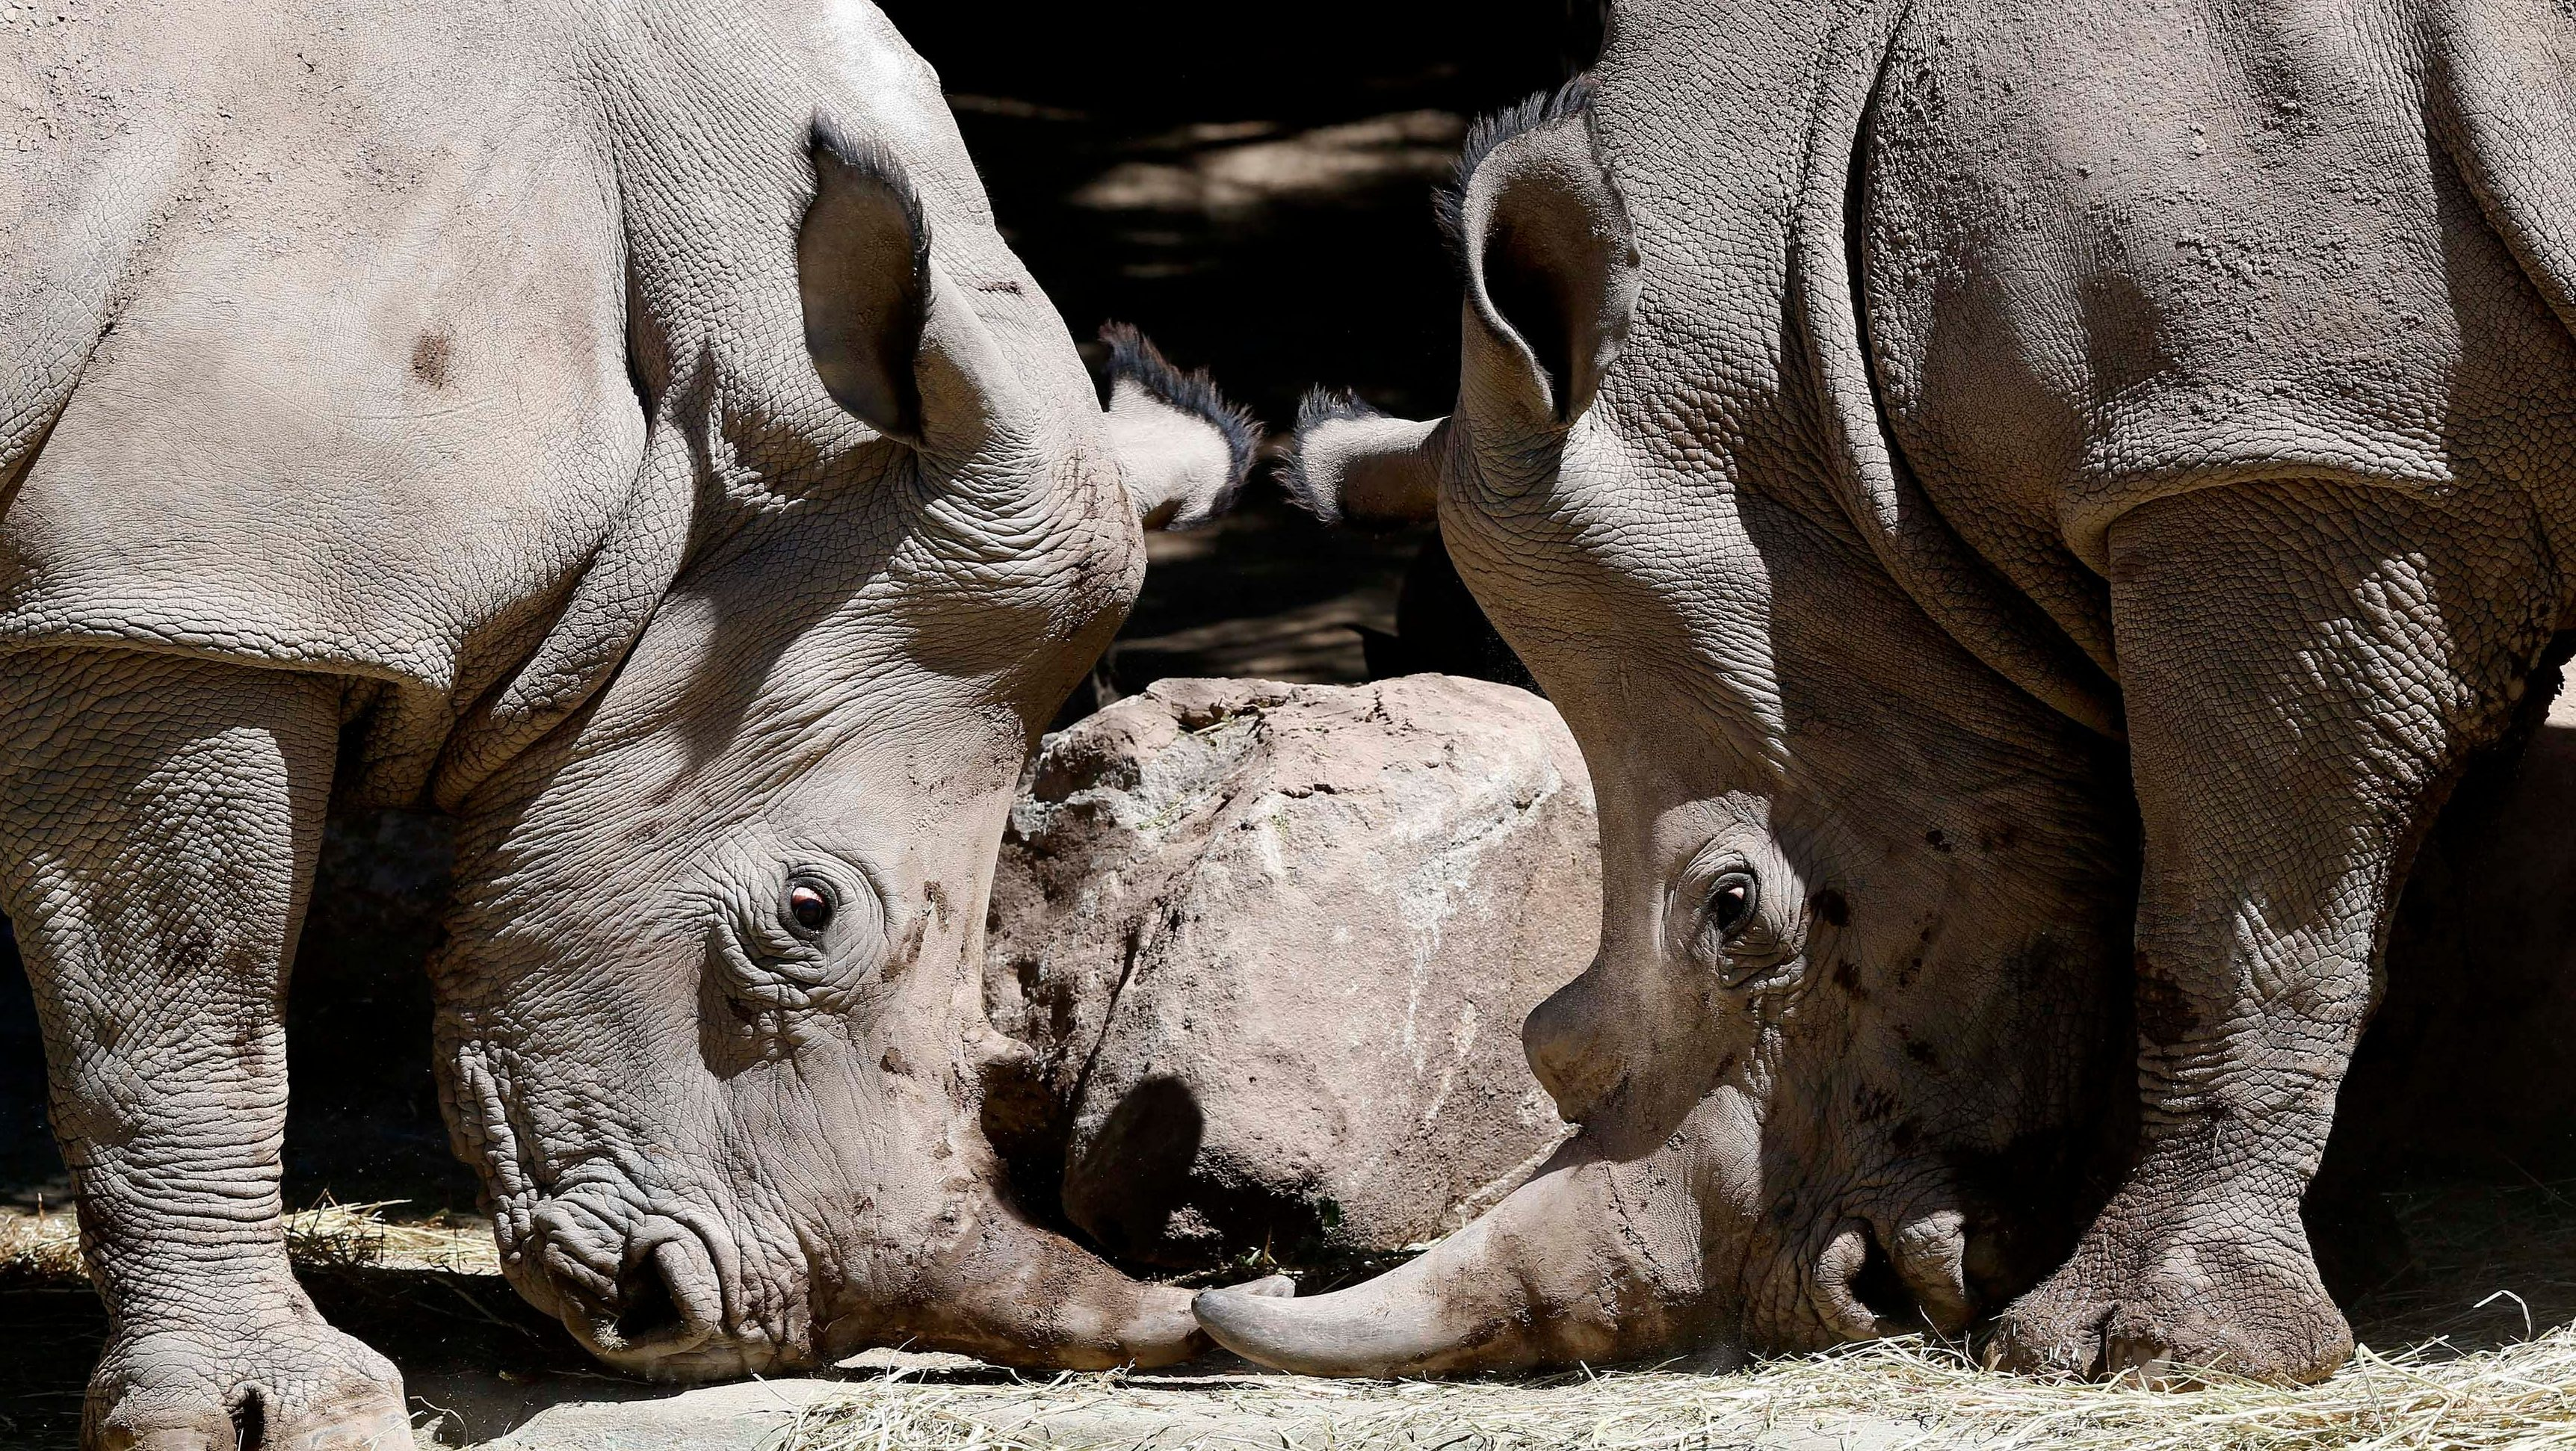 Oliver and Hanna, one-and-a-half year-old white rhinoceros, are pictured at a zoo in Santiago, October 4, 2013. The rhinos were brought from South Africa and will be displayed to the public from Saturday.